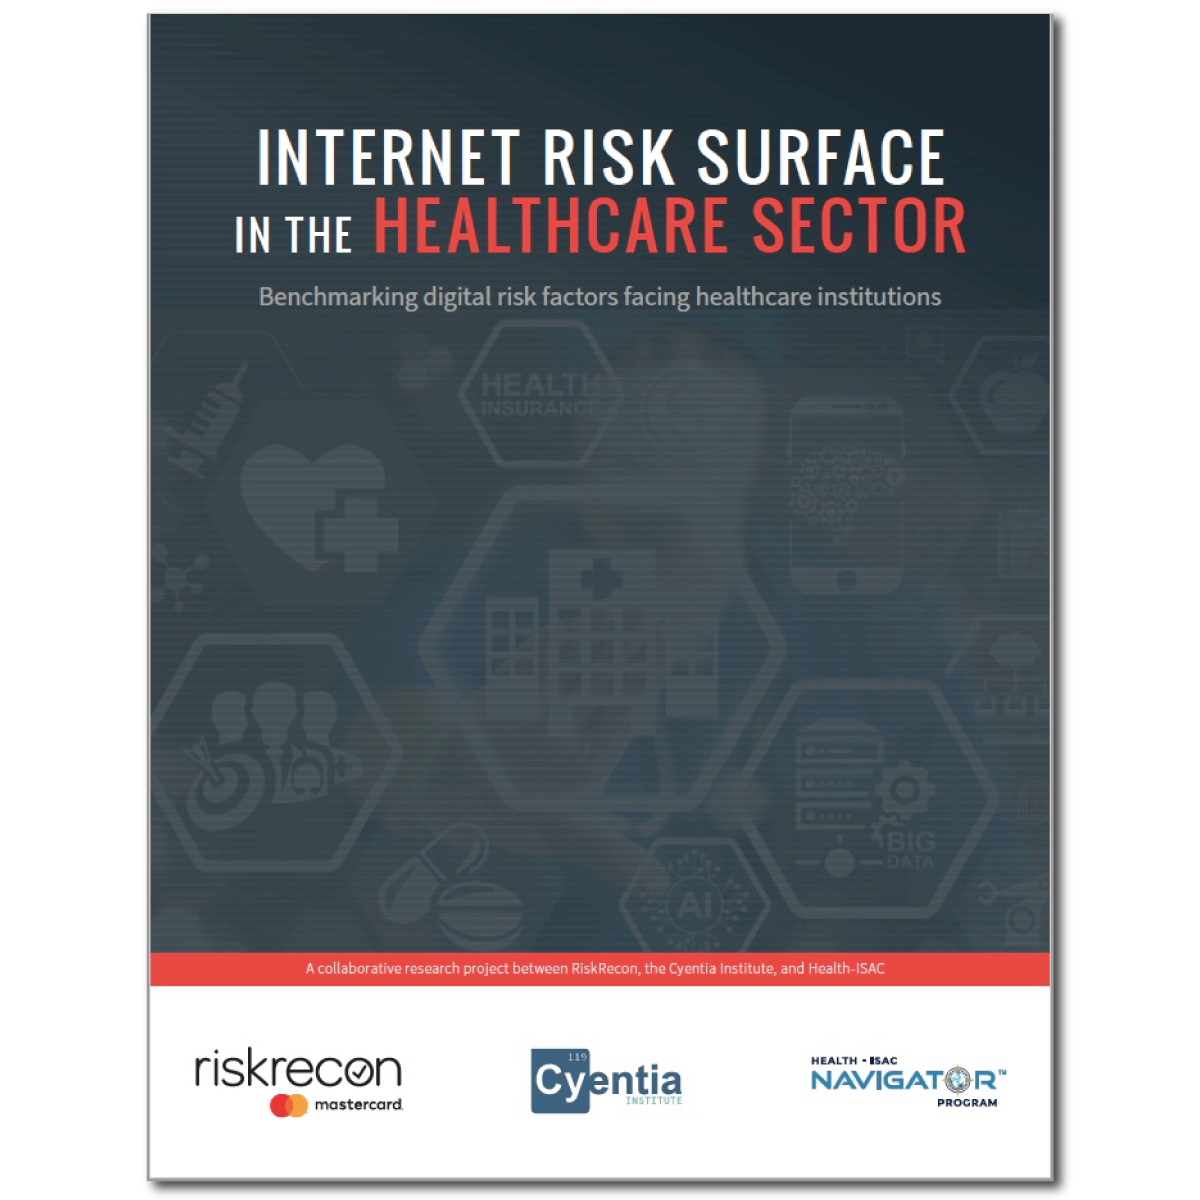 HealthcareRiskSurfaceReport-1200x1200